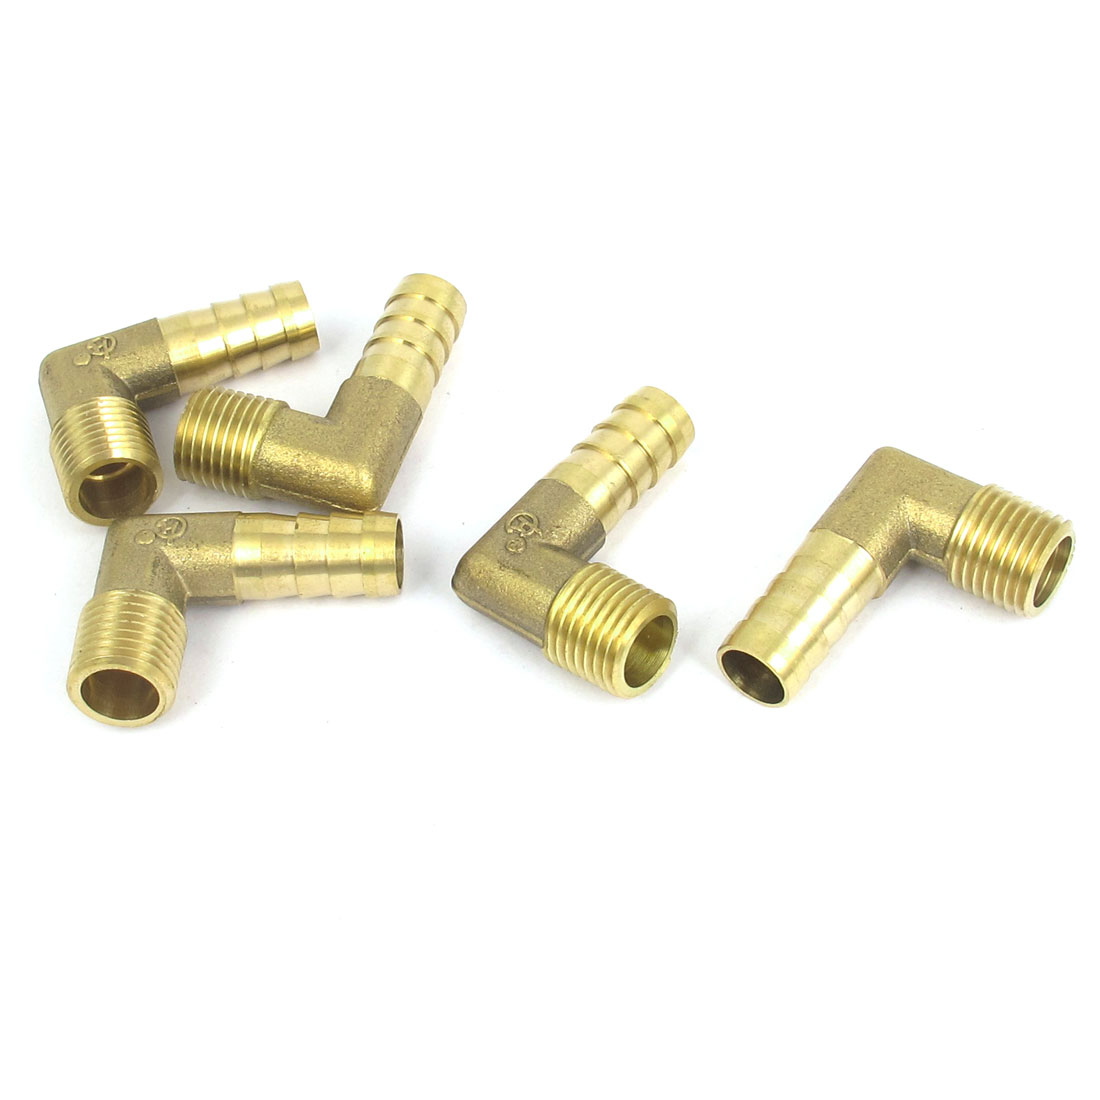 1/4BSP Thread 10mm Tube Dia 90 Degree Brass Hose Barb Coupler Connector 5pcs